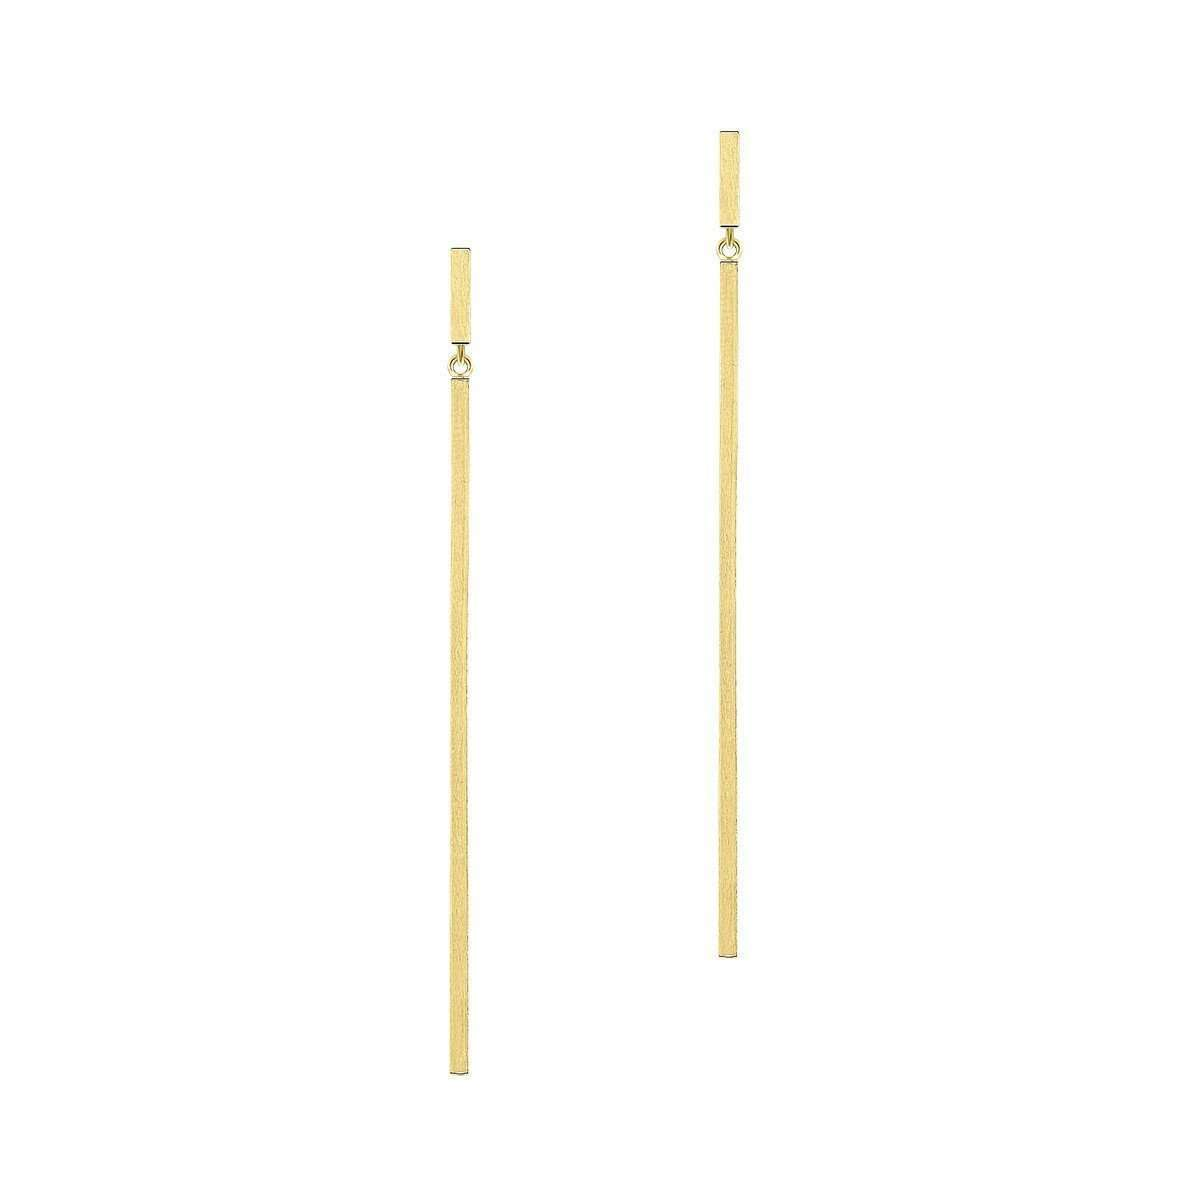 Aphrodite Long Bar Yellow Gold Plated Earrings-Sarah Kosta-JewelStreet US